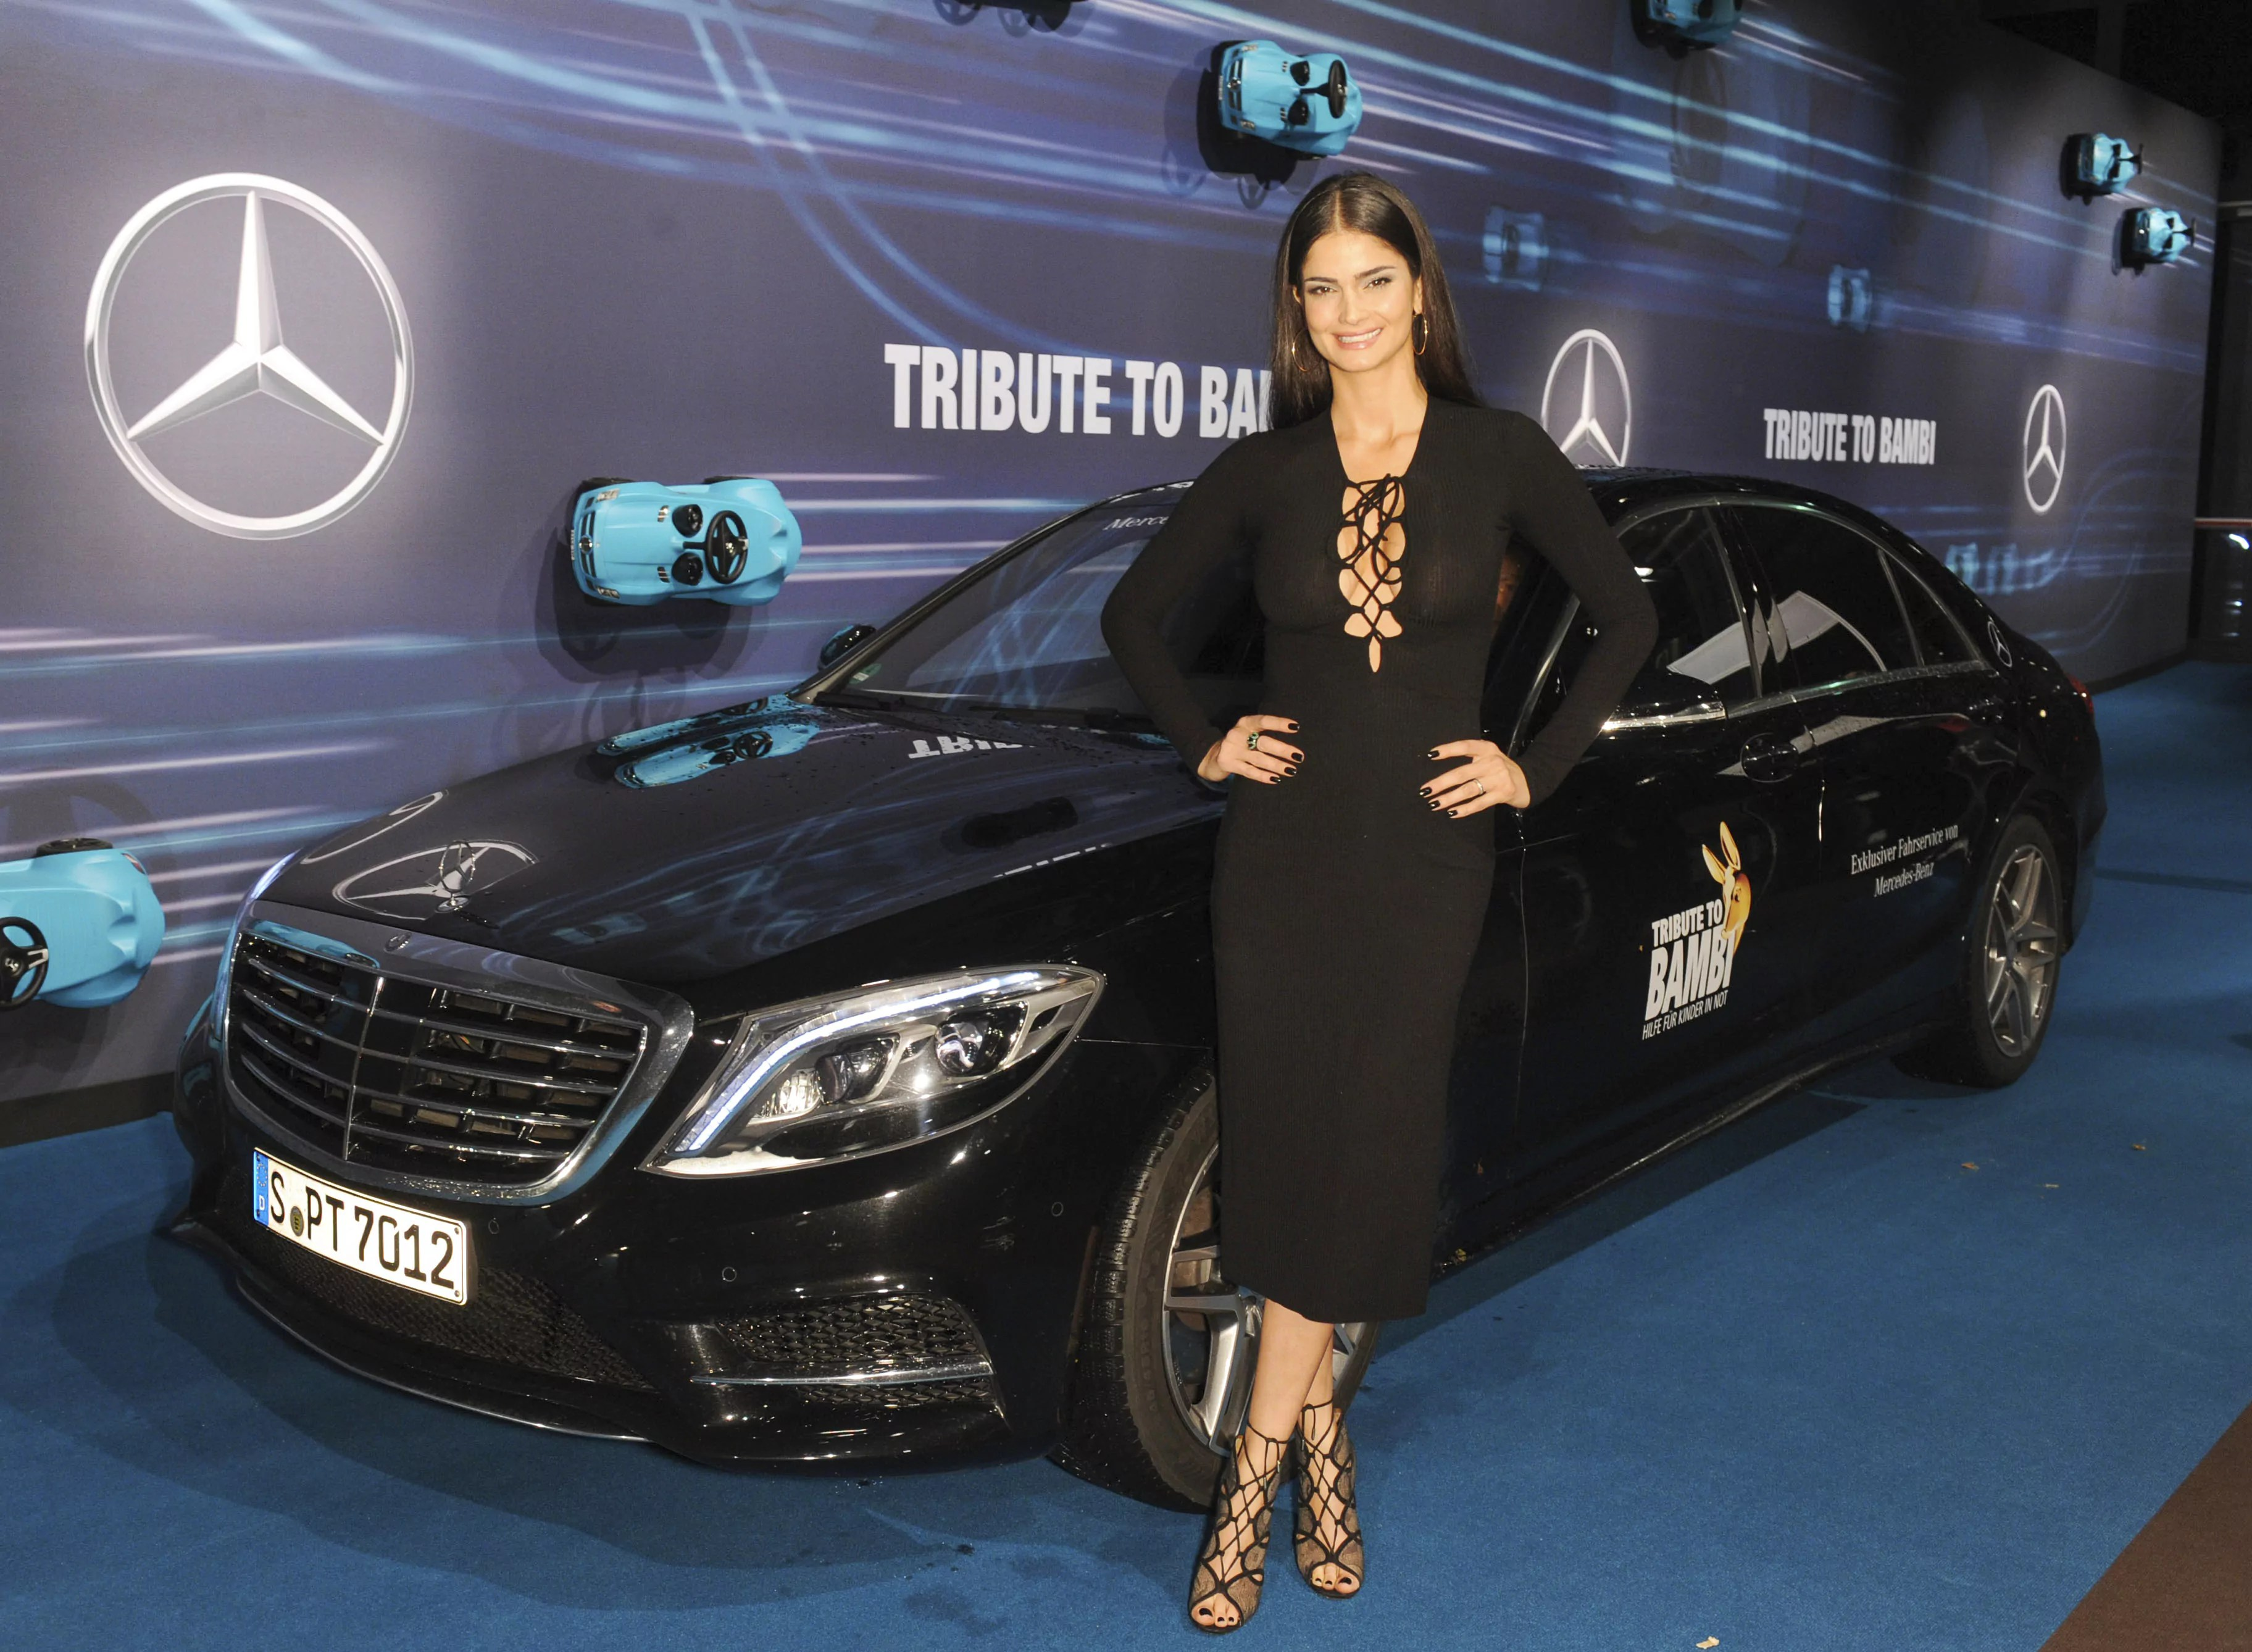 Shermine Shahrivar Tribute To Bambi 2015 in The Station in Berlin am 15.10.2015 Foto: Daimler AG